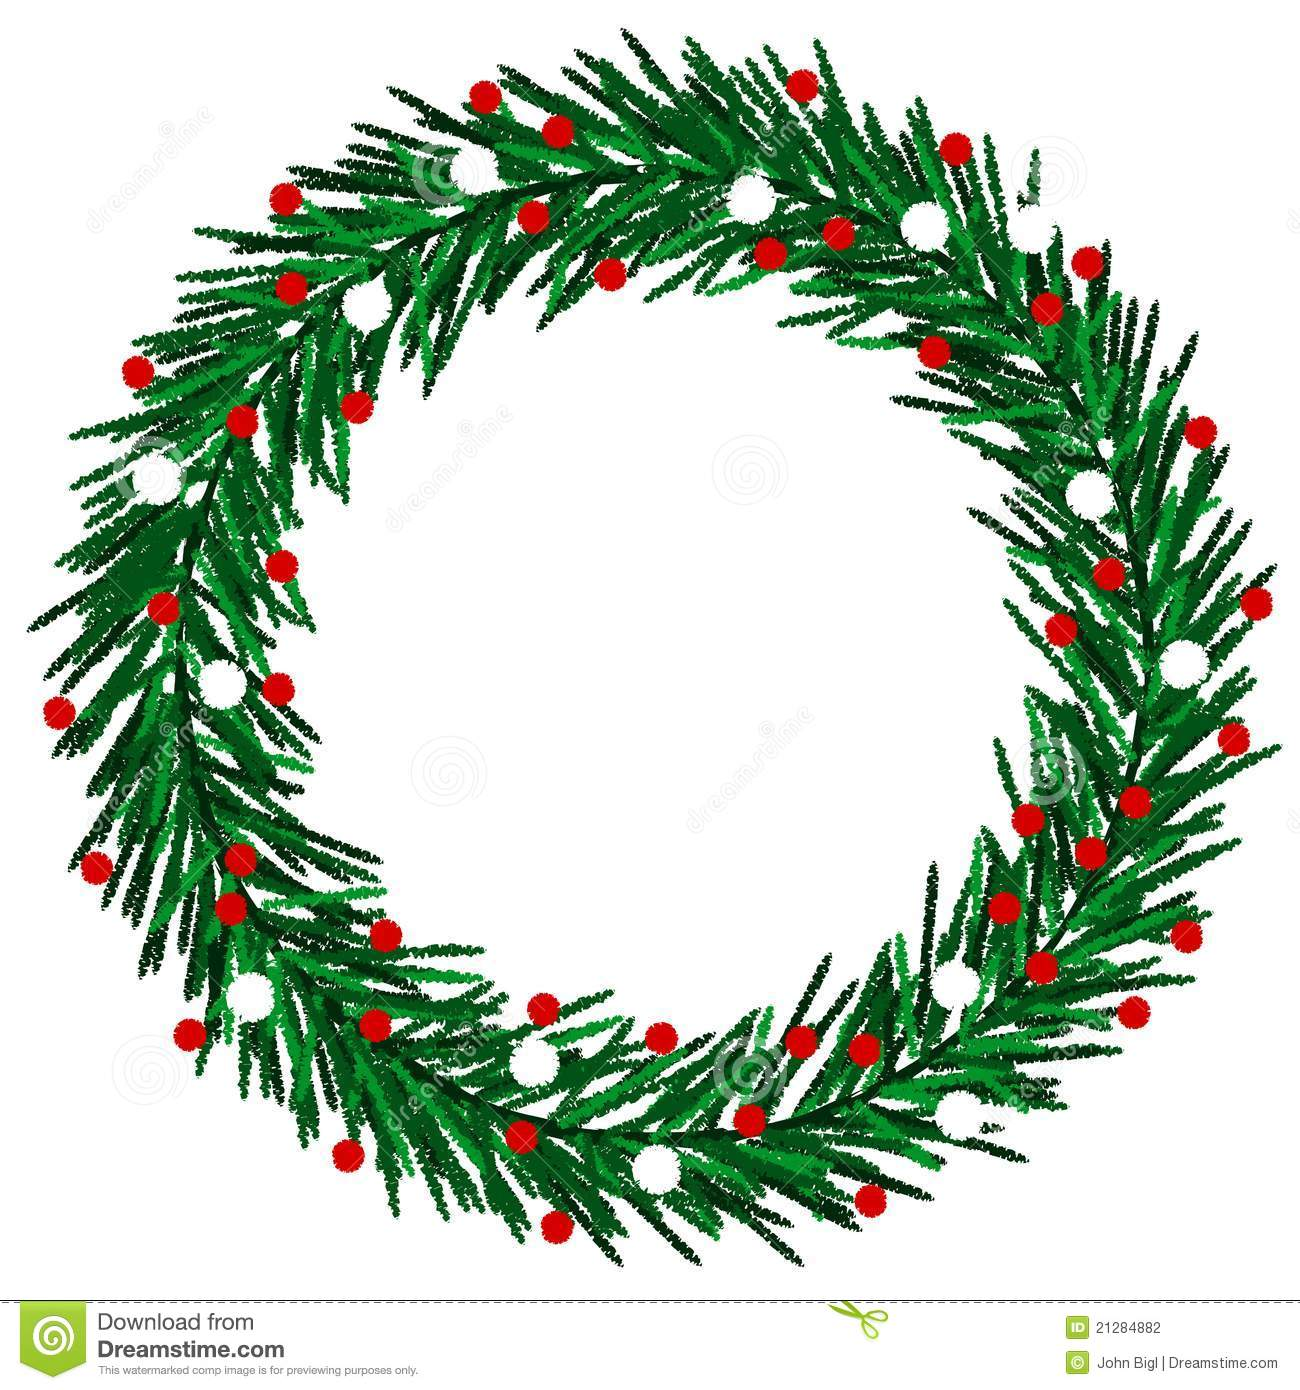 Christmas Wreath Drawing at GetDrawings.com | Free for personal use ...